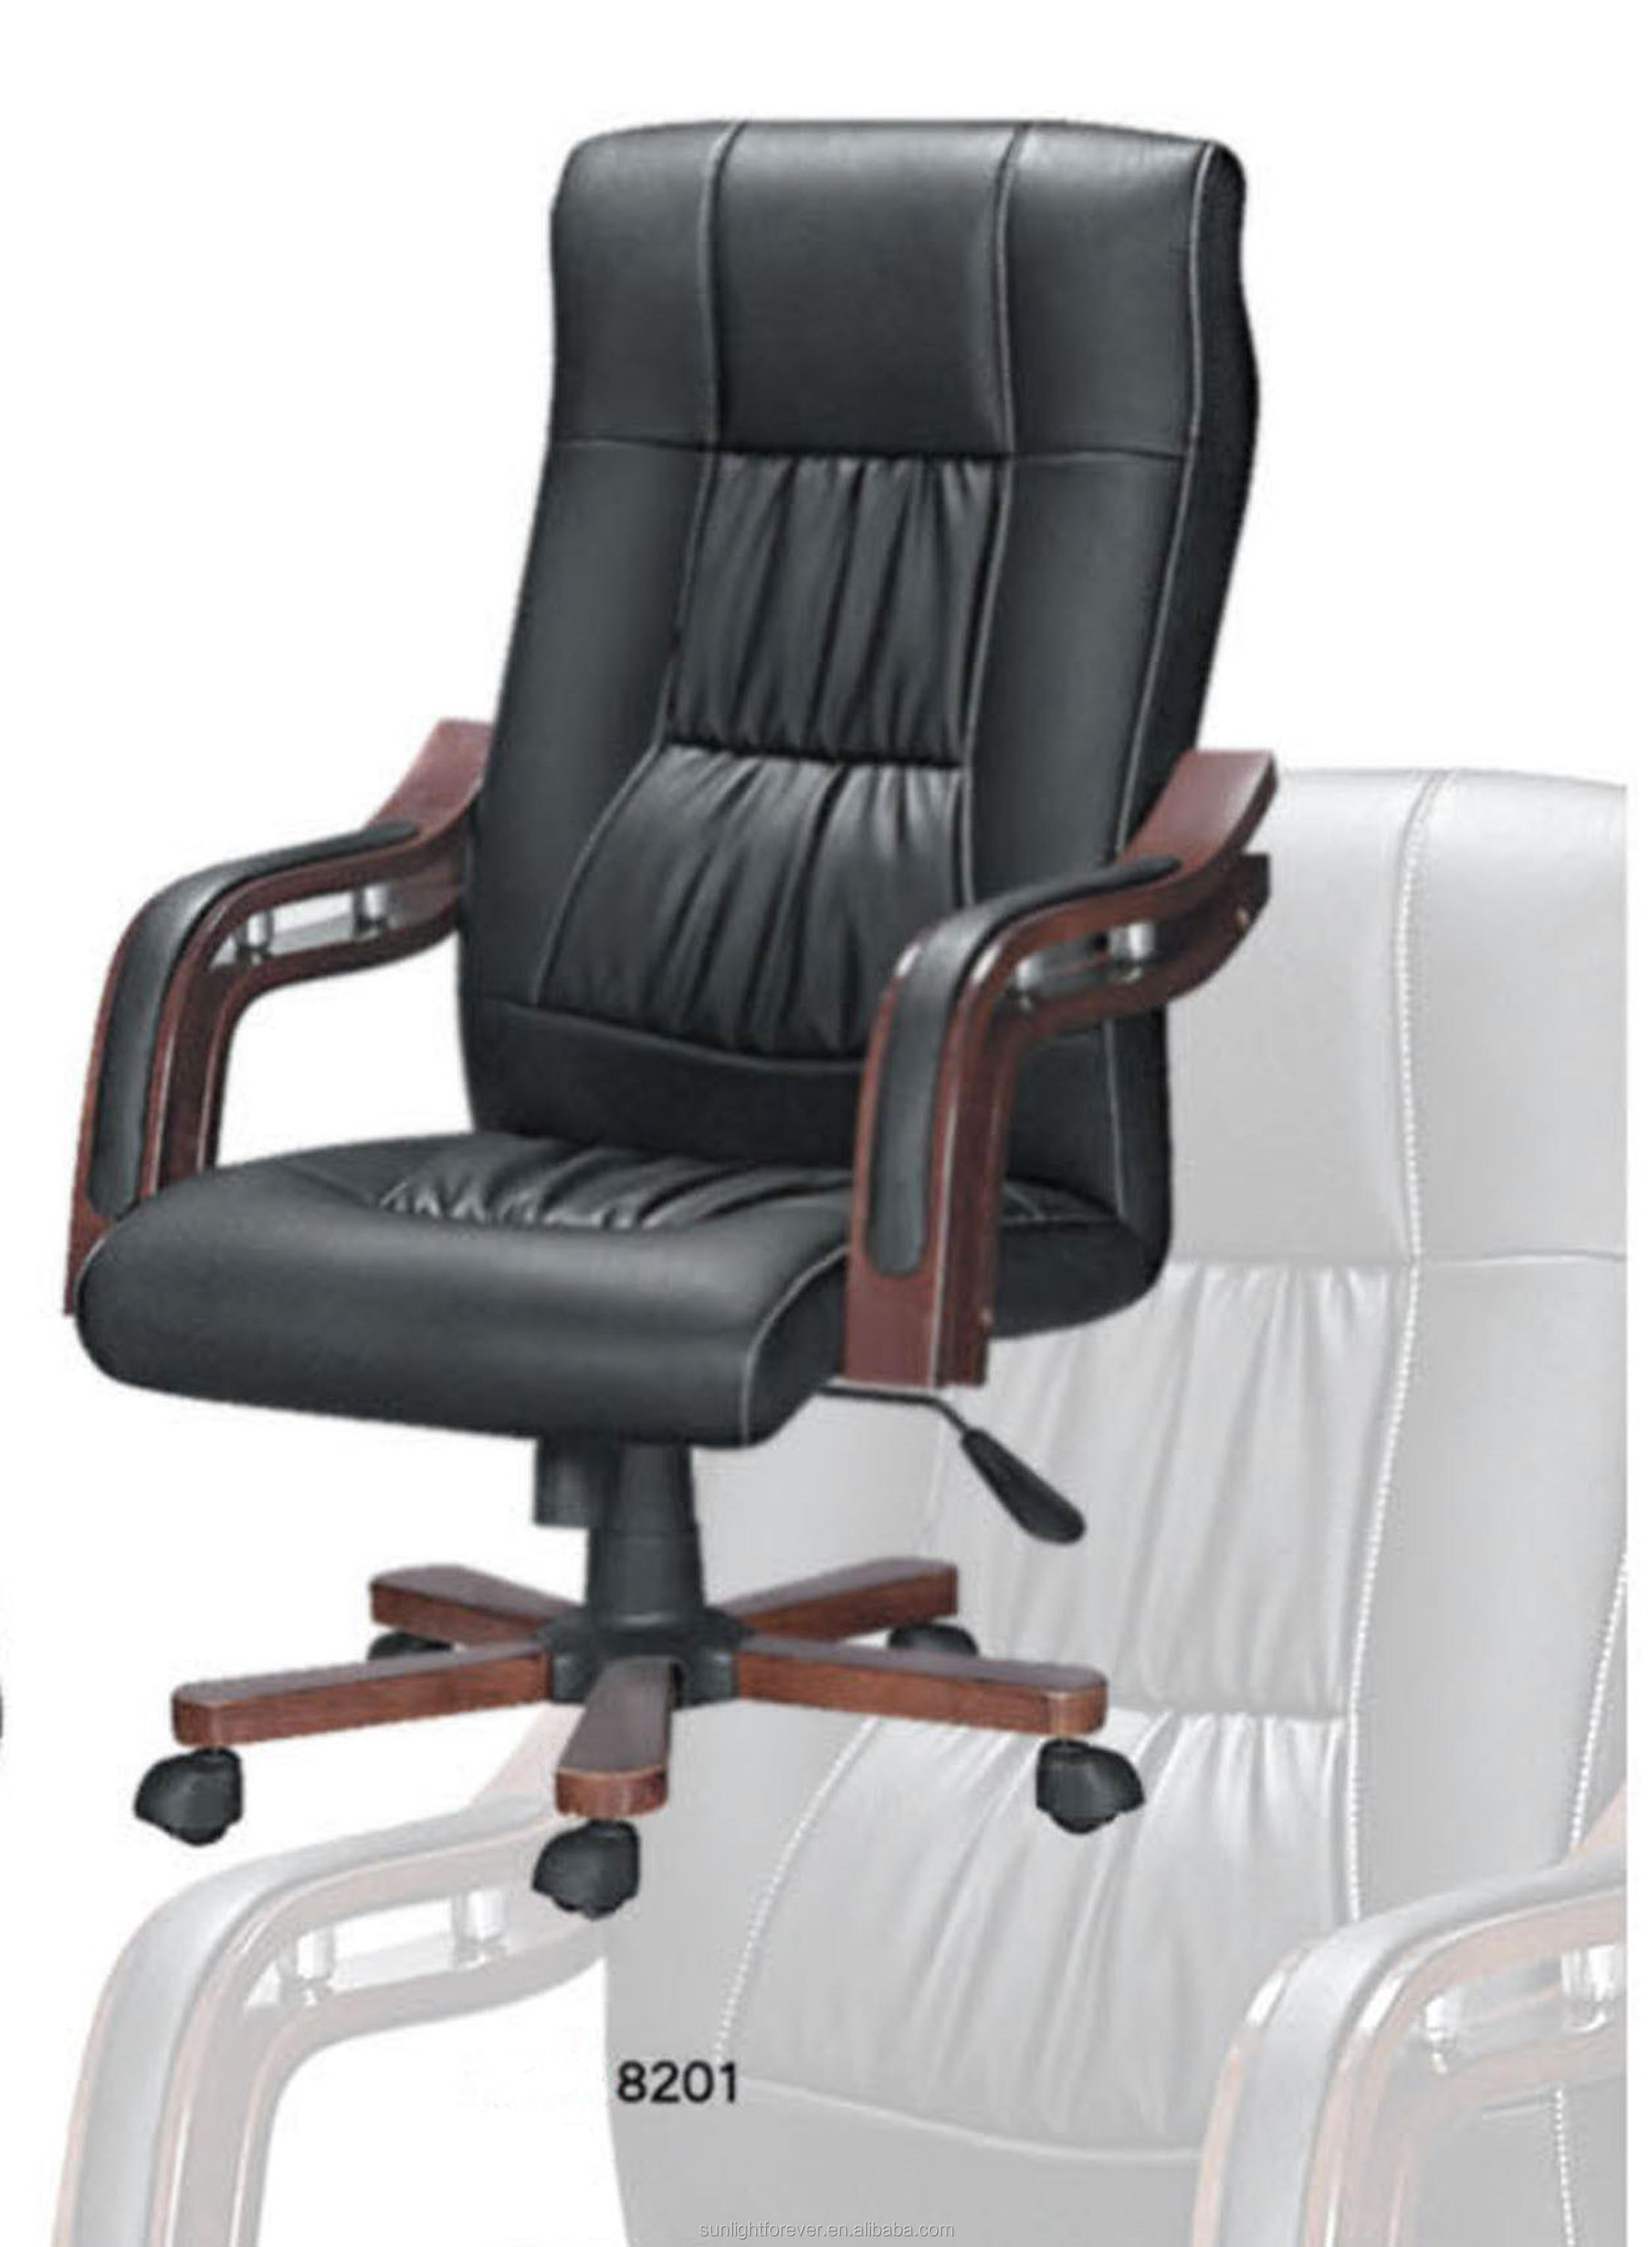 Stair Chair Wood Stair Chair Wood Suppliers and Manufacturers at